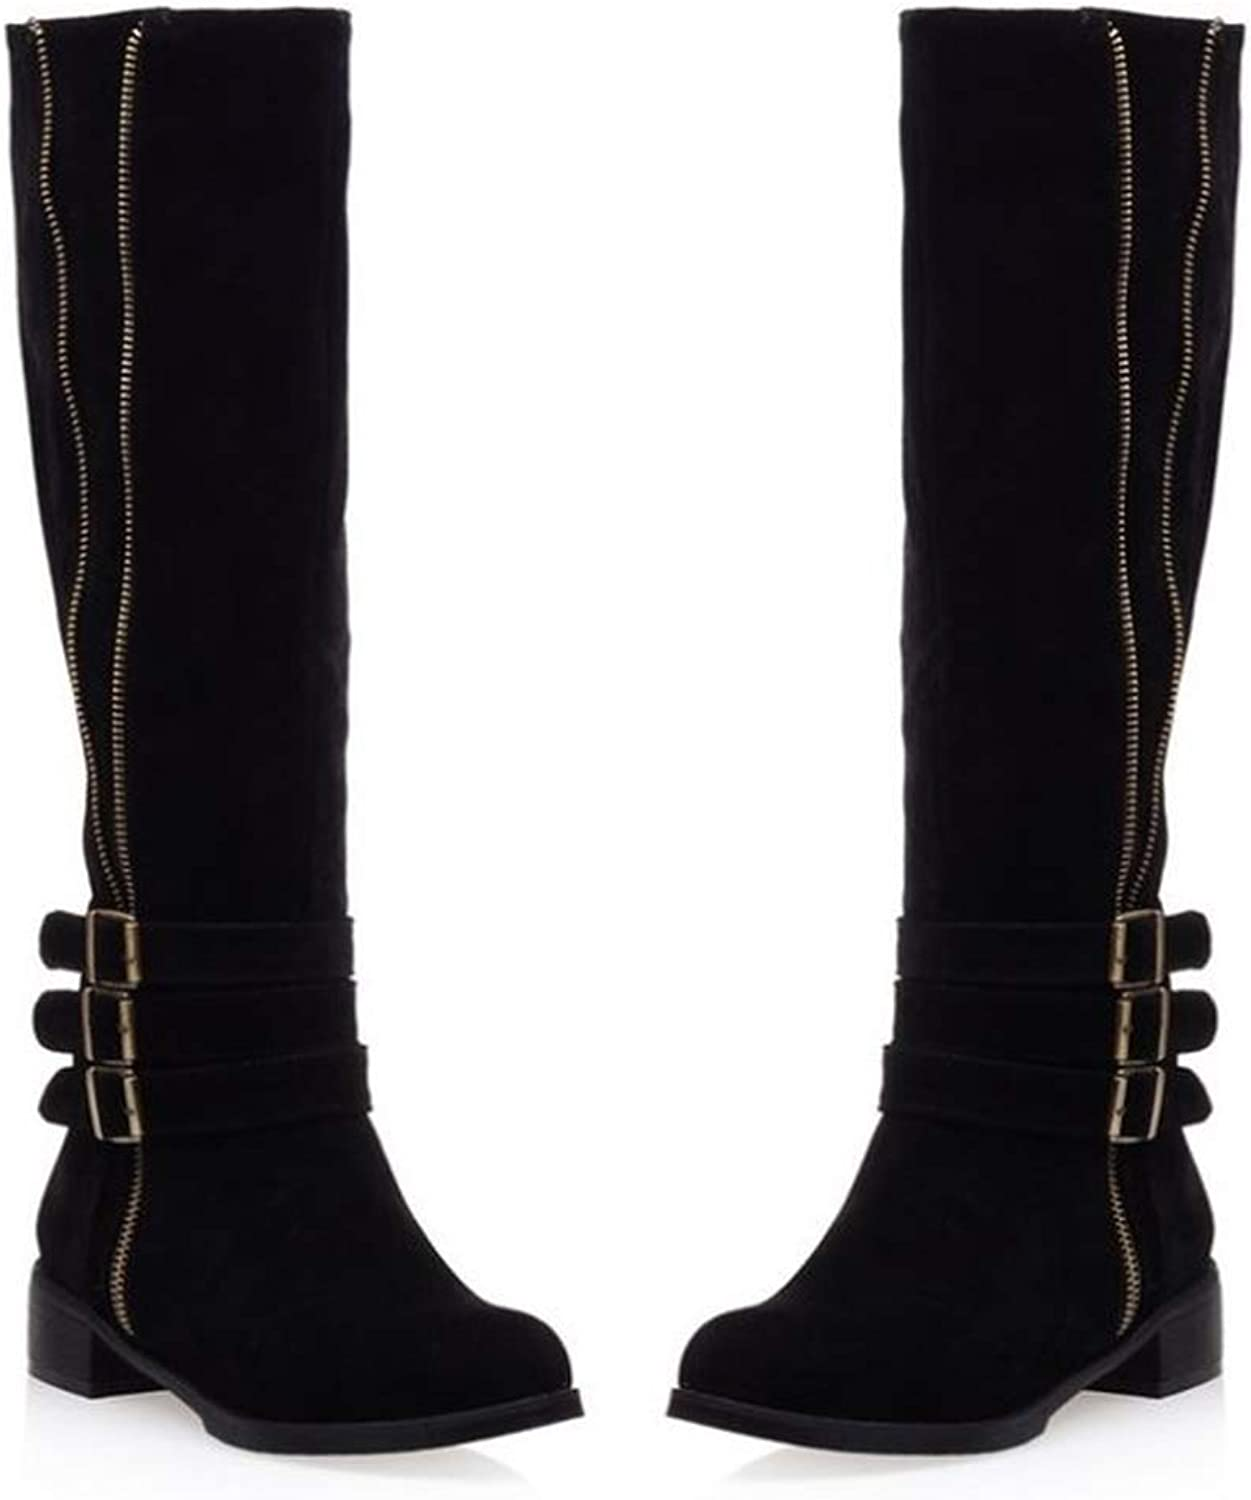 Zgshnfgk Women's Boots with Buckle Straps